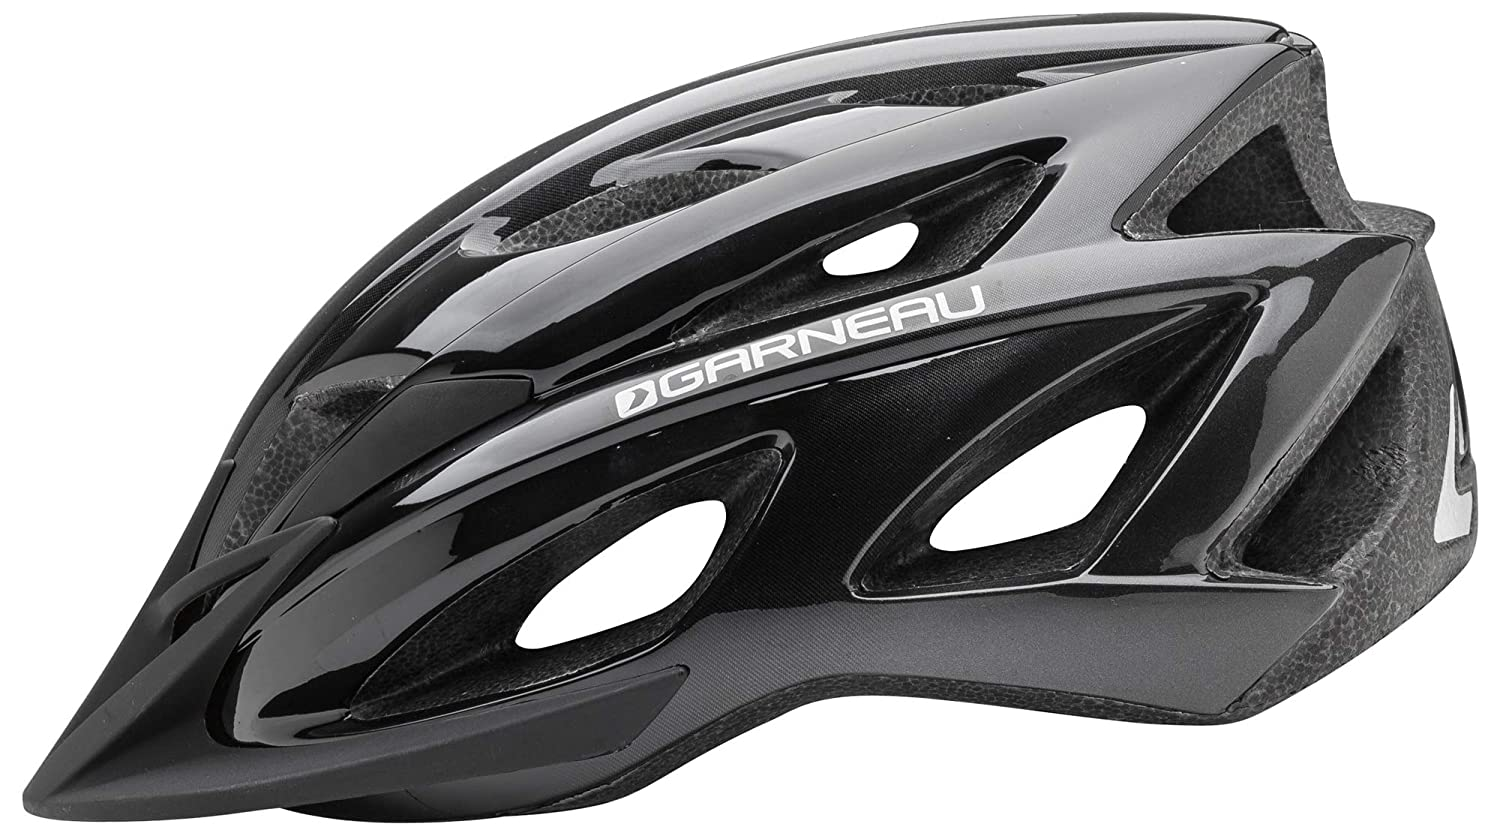 Louis Garneau Le Tour 2 Lightweight, Adjustable, CPSC Safety Certified Bike Helmet for Men and Women